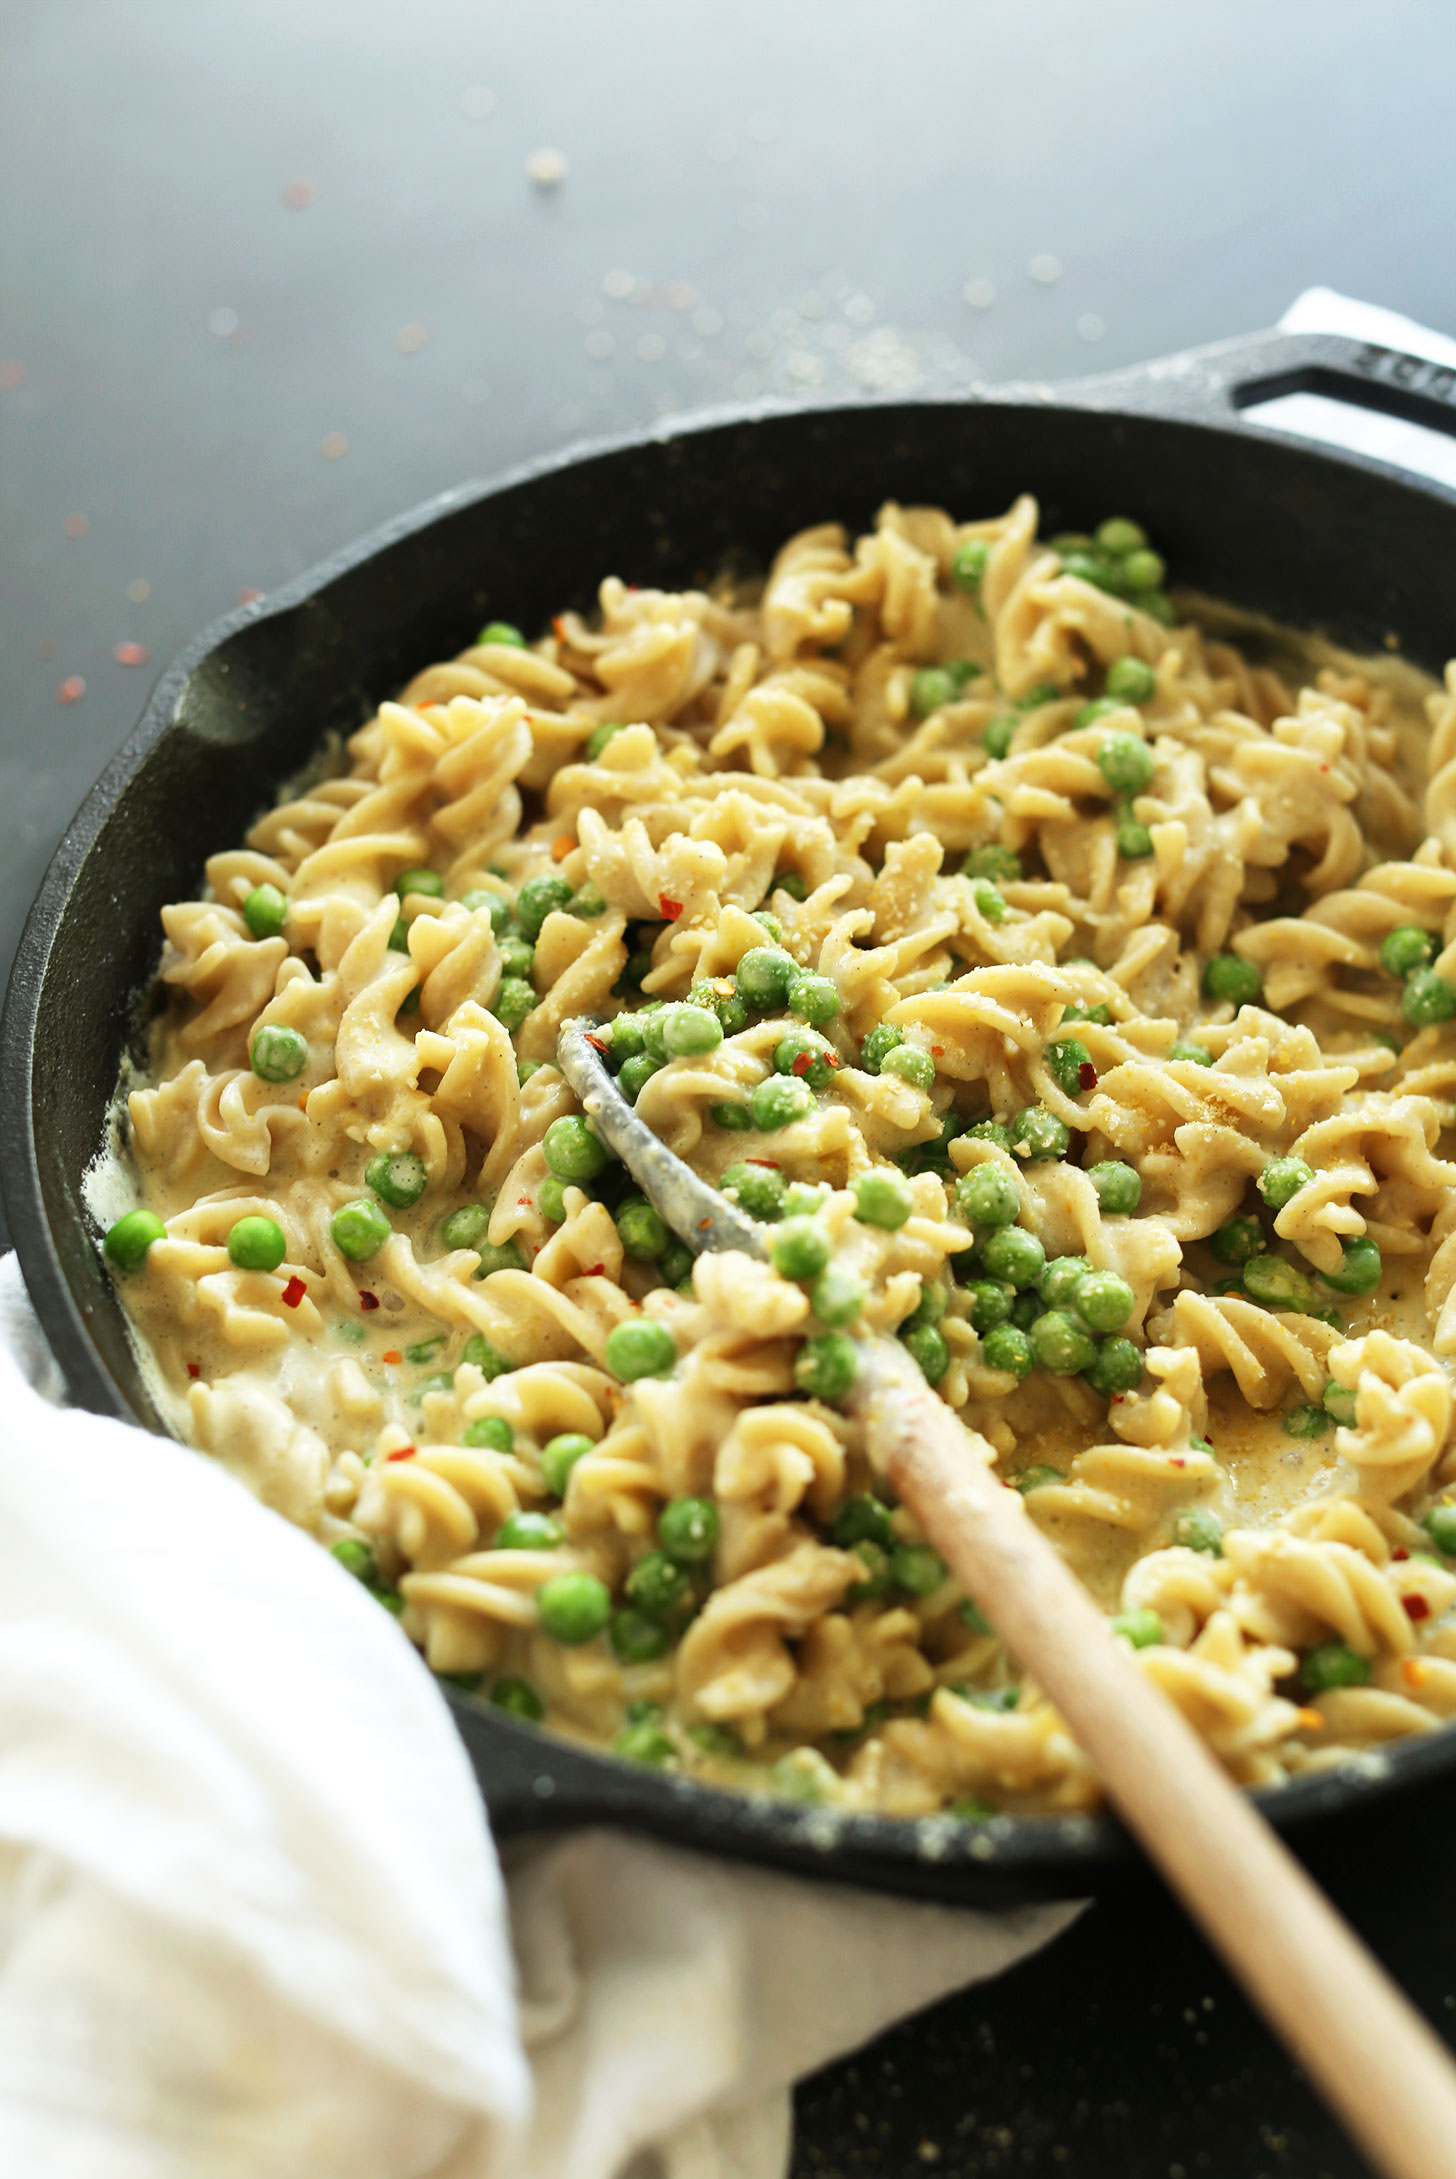 Cast-iron skillet filled with our delicious Vegan Alfredo Pasta recipe